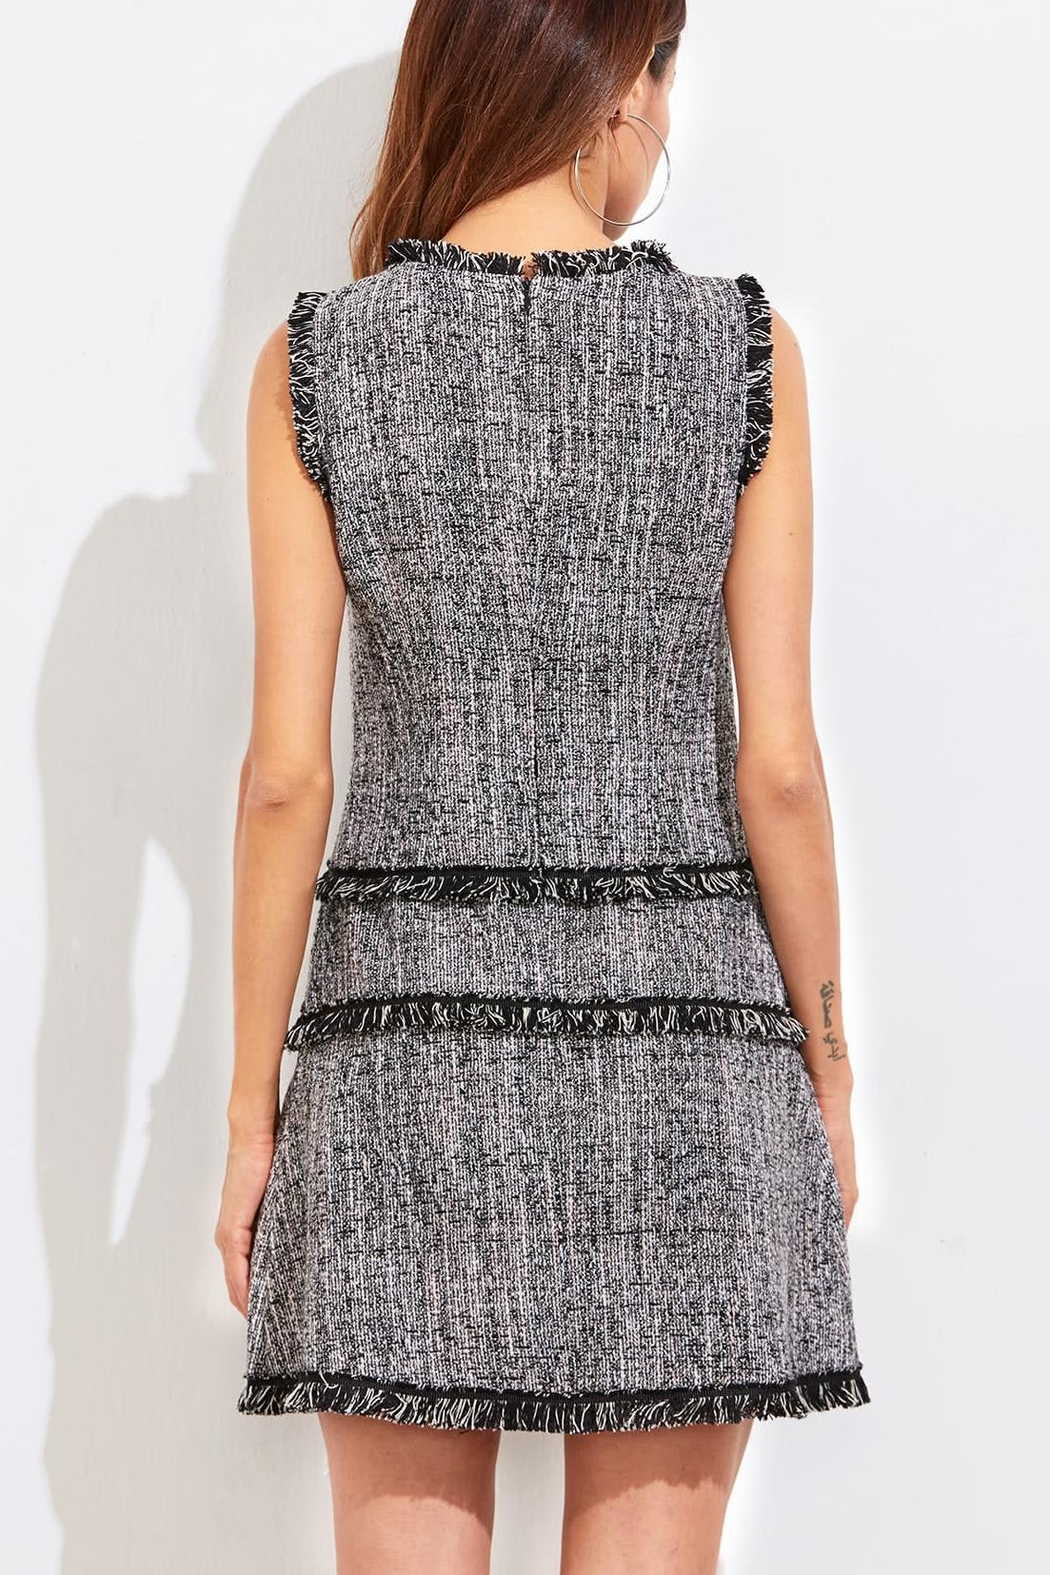 House of Atelier Classic Tweed Dress - Side Cropped Image